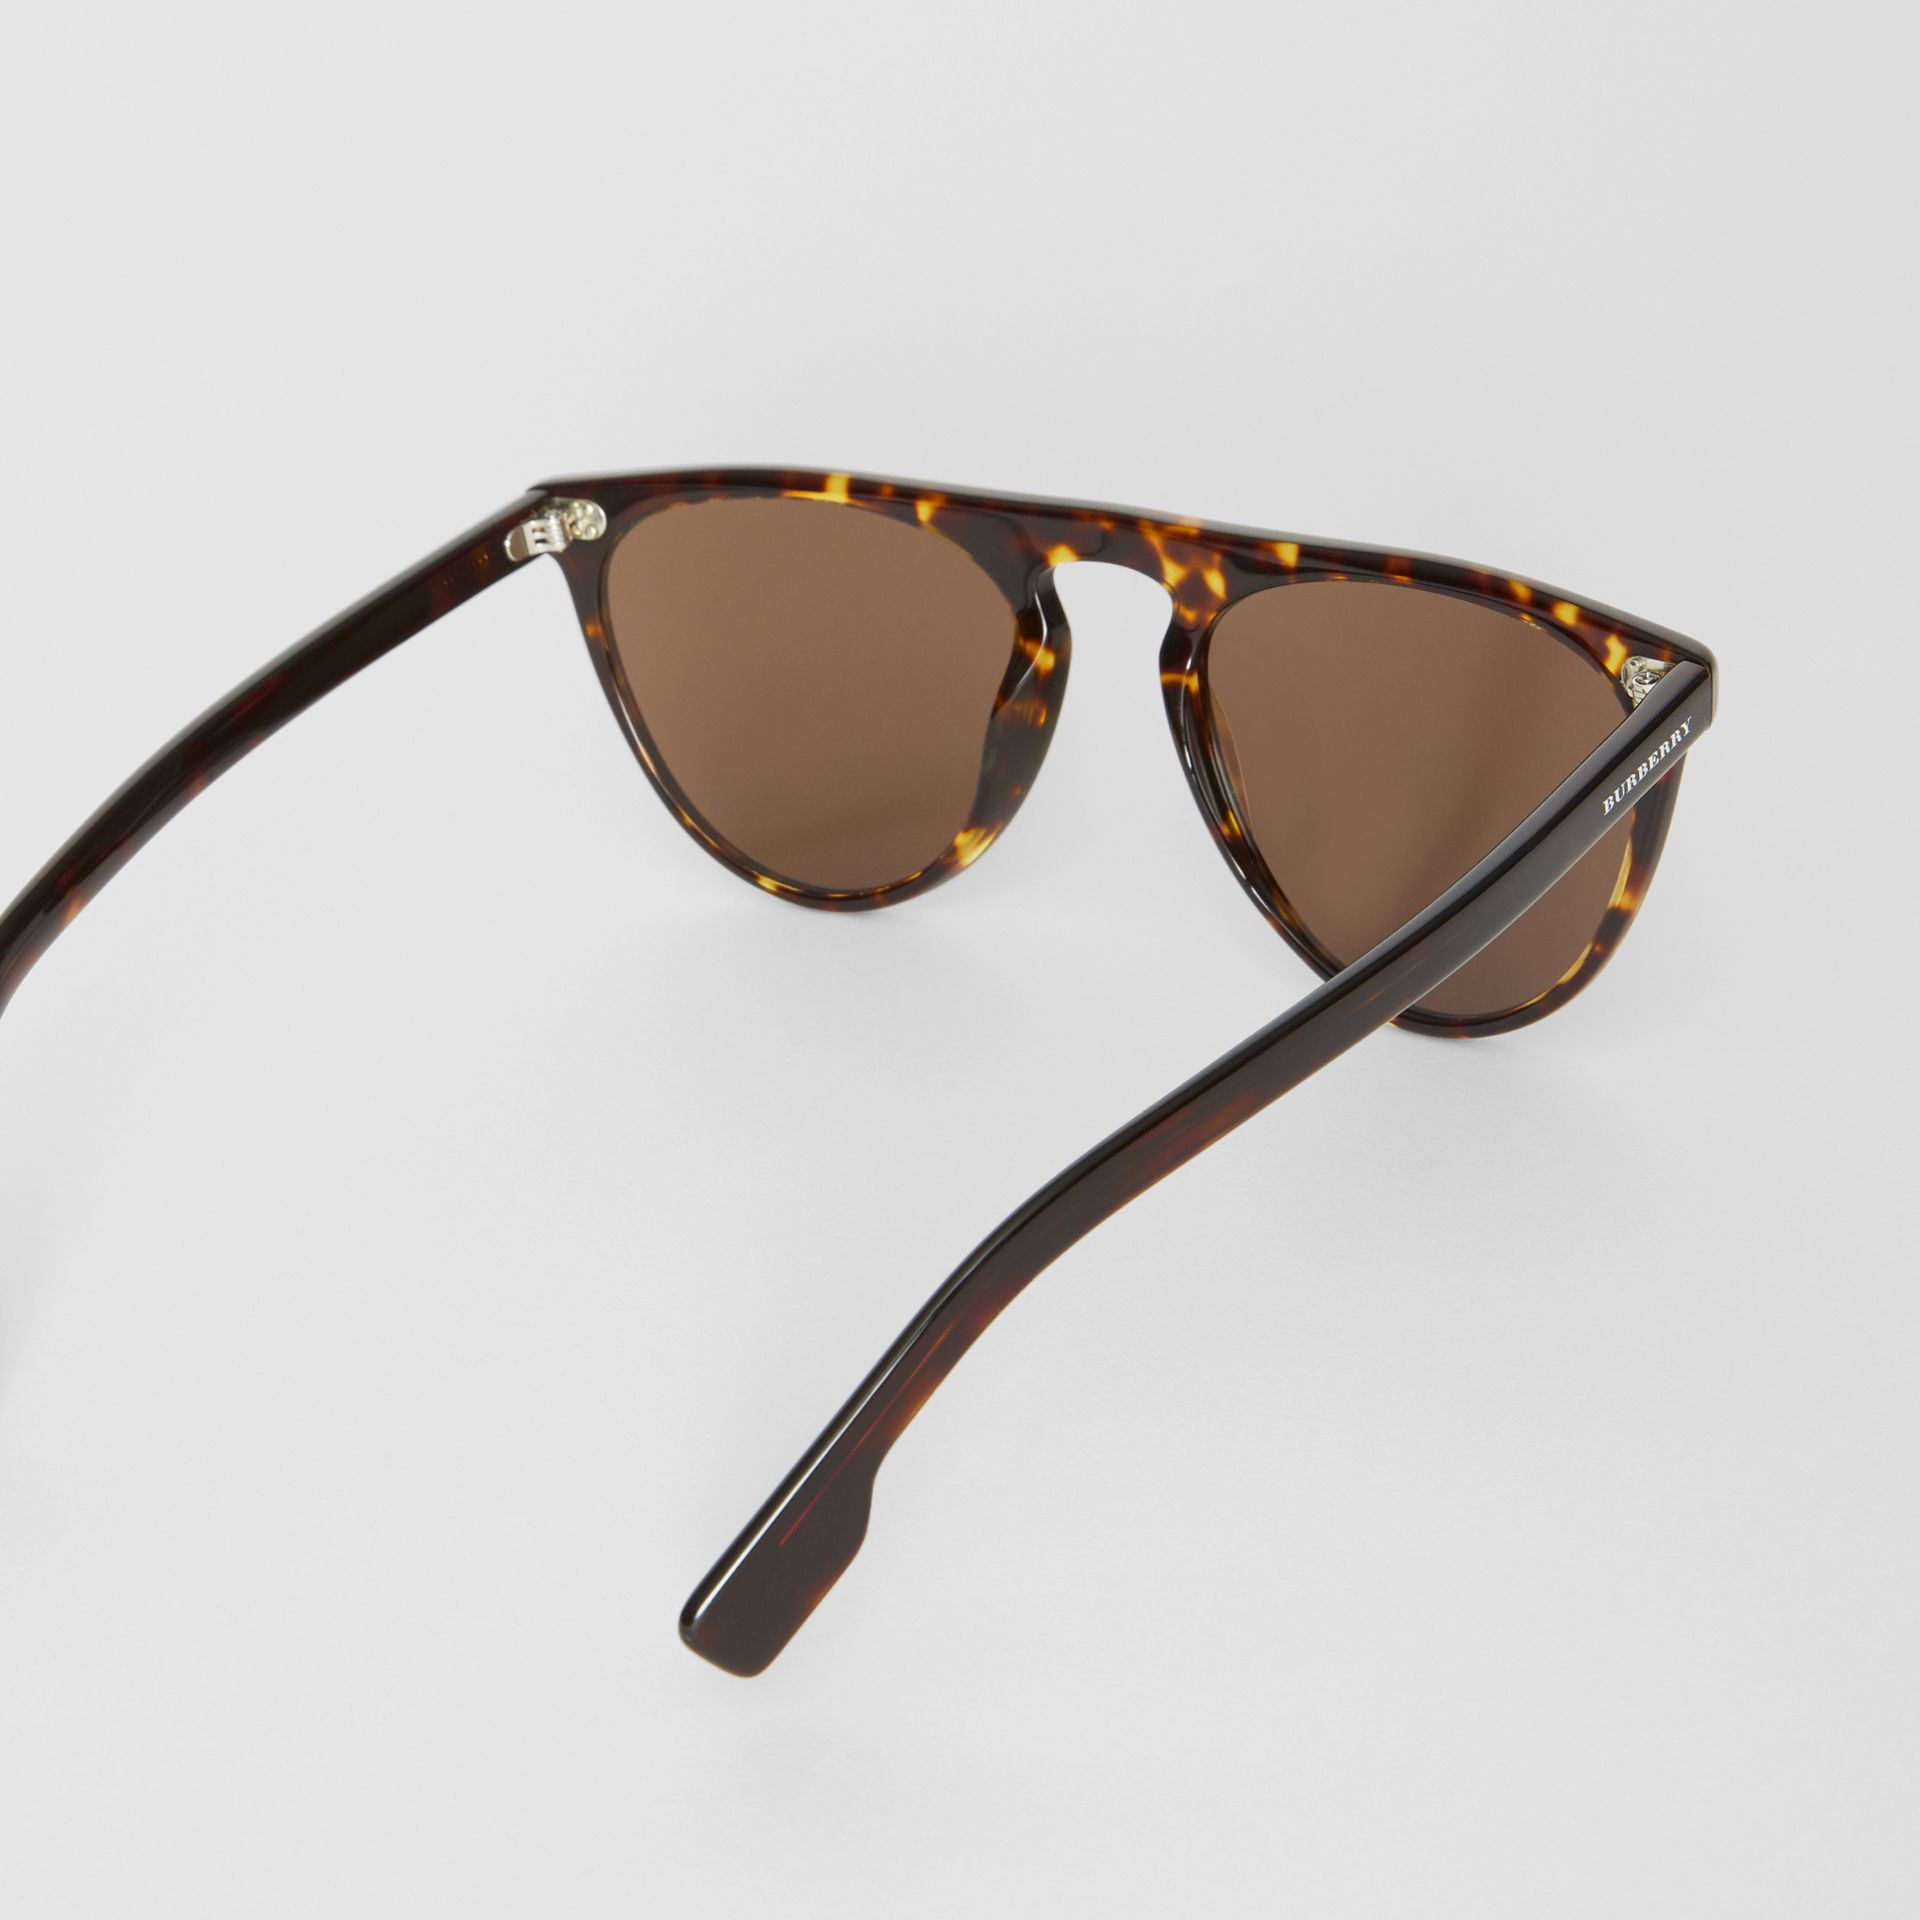 Keyhole D-shaped Sunglasses in Tortoise Shell - Men | Burberry - gallery image 4